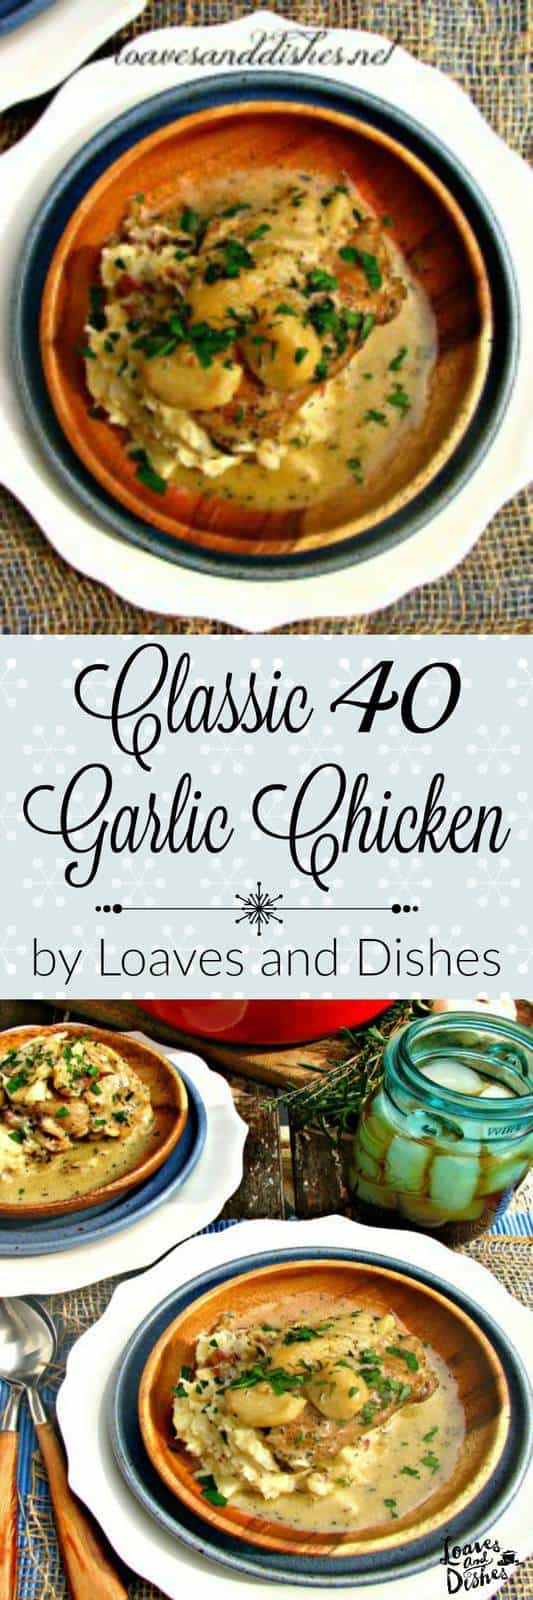 This classic dish of 40 Garlic Chicken will delight you and your friends!  Besides, the house will smell like heaven! PS- Garlic isn't that strong when cooked this way.  You will love it!  Try it this holiday season!